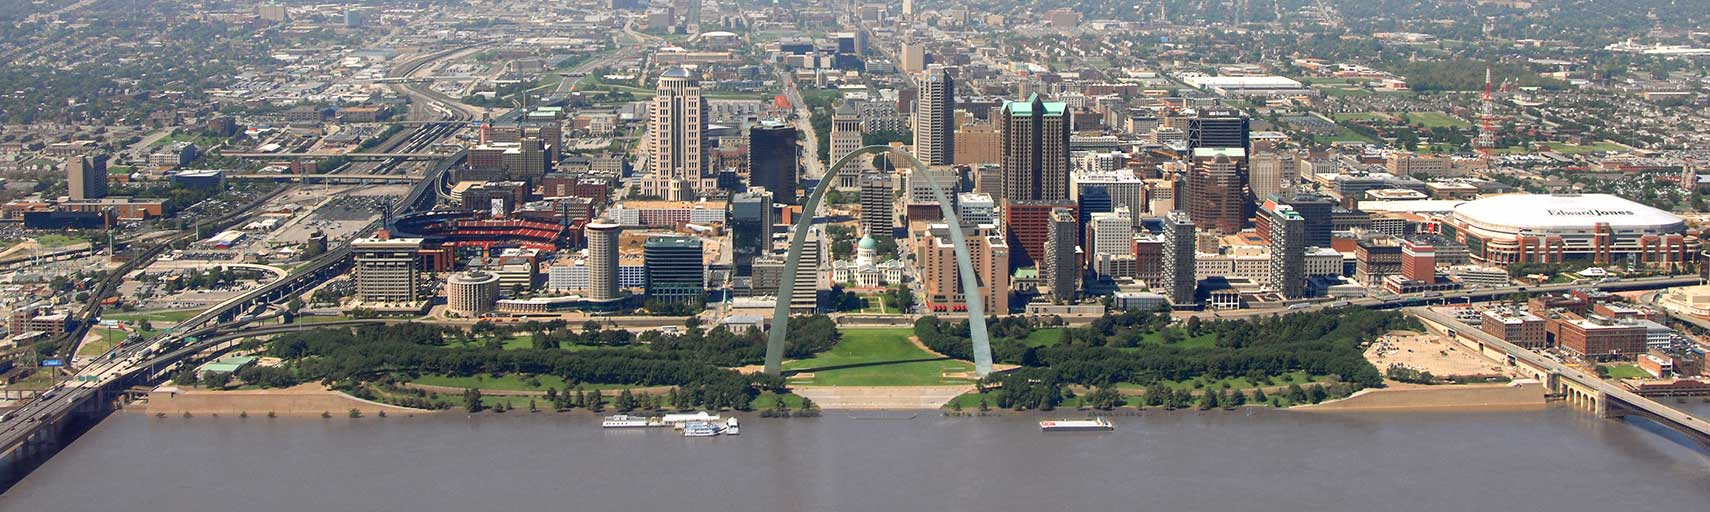 Aerial view of St. Louis